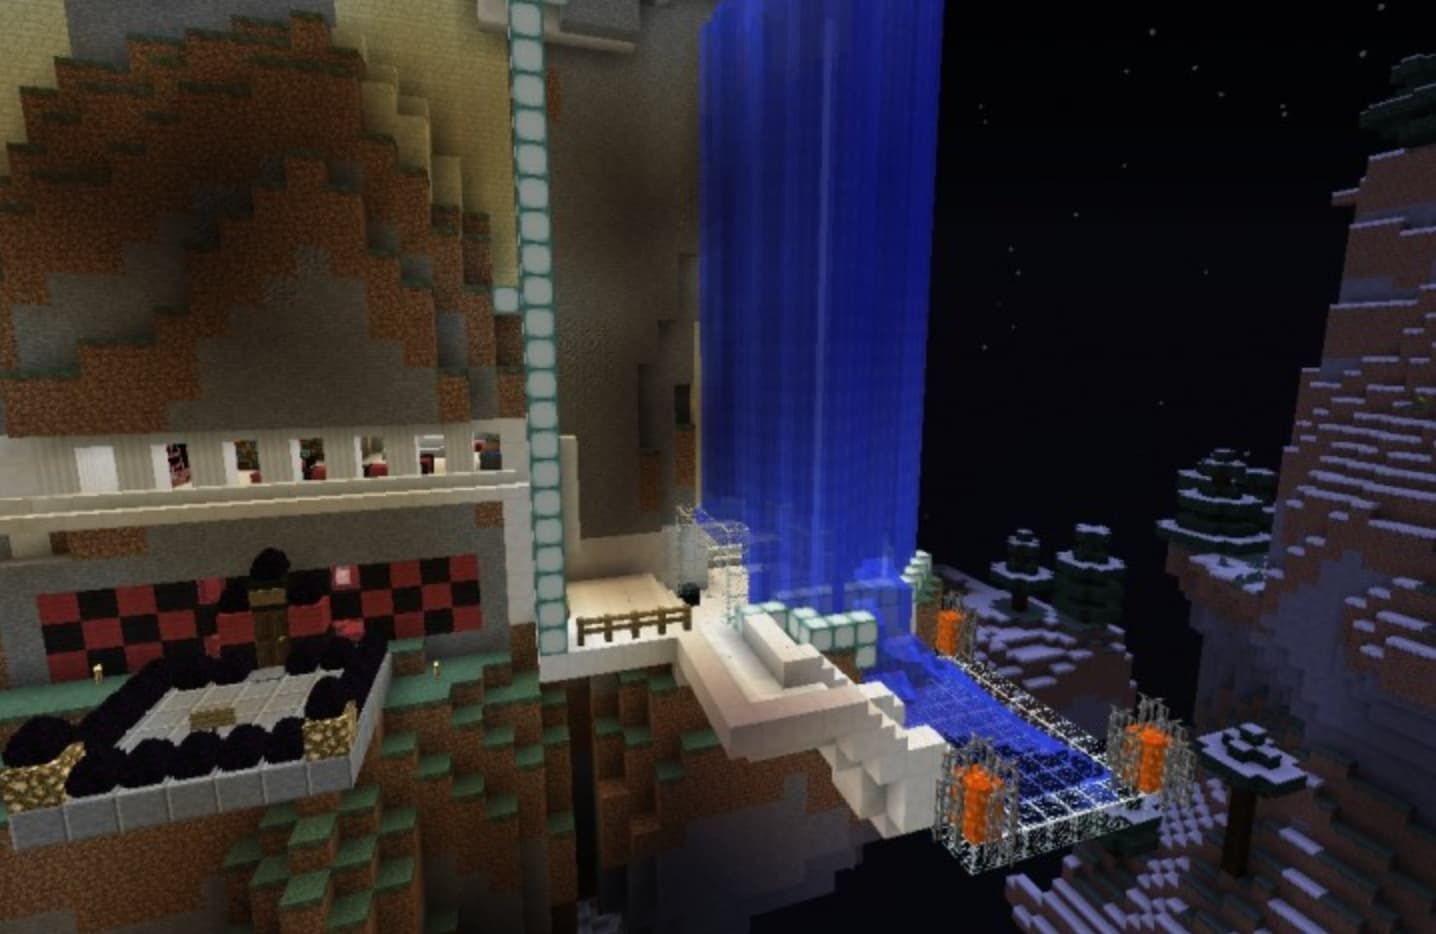 Join other Minecraft builders to construct amazing superhero hideouts!